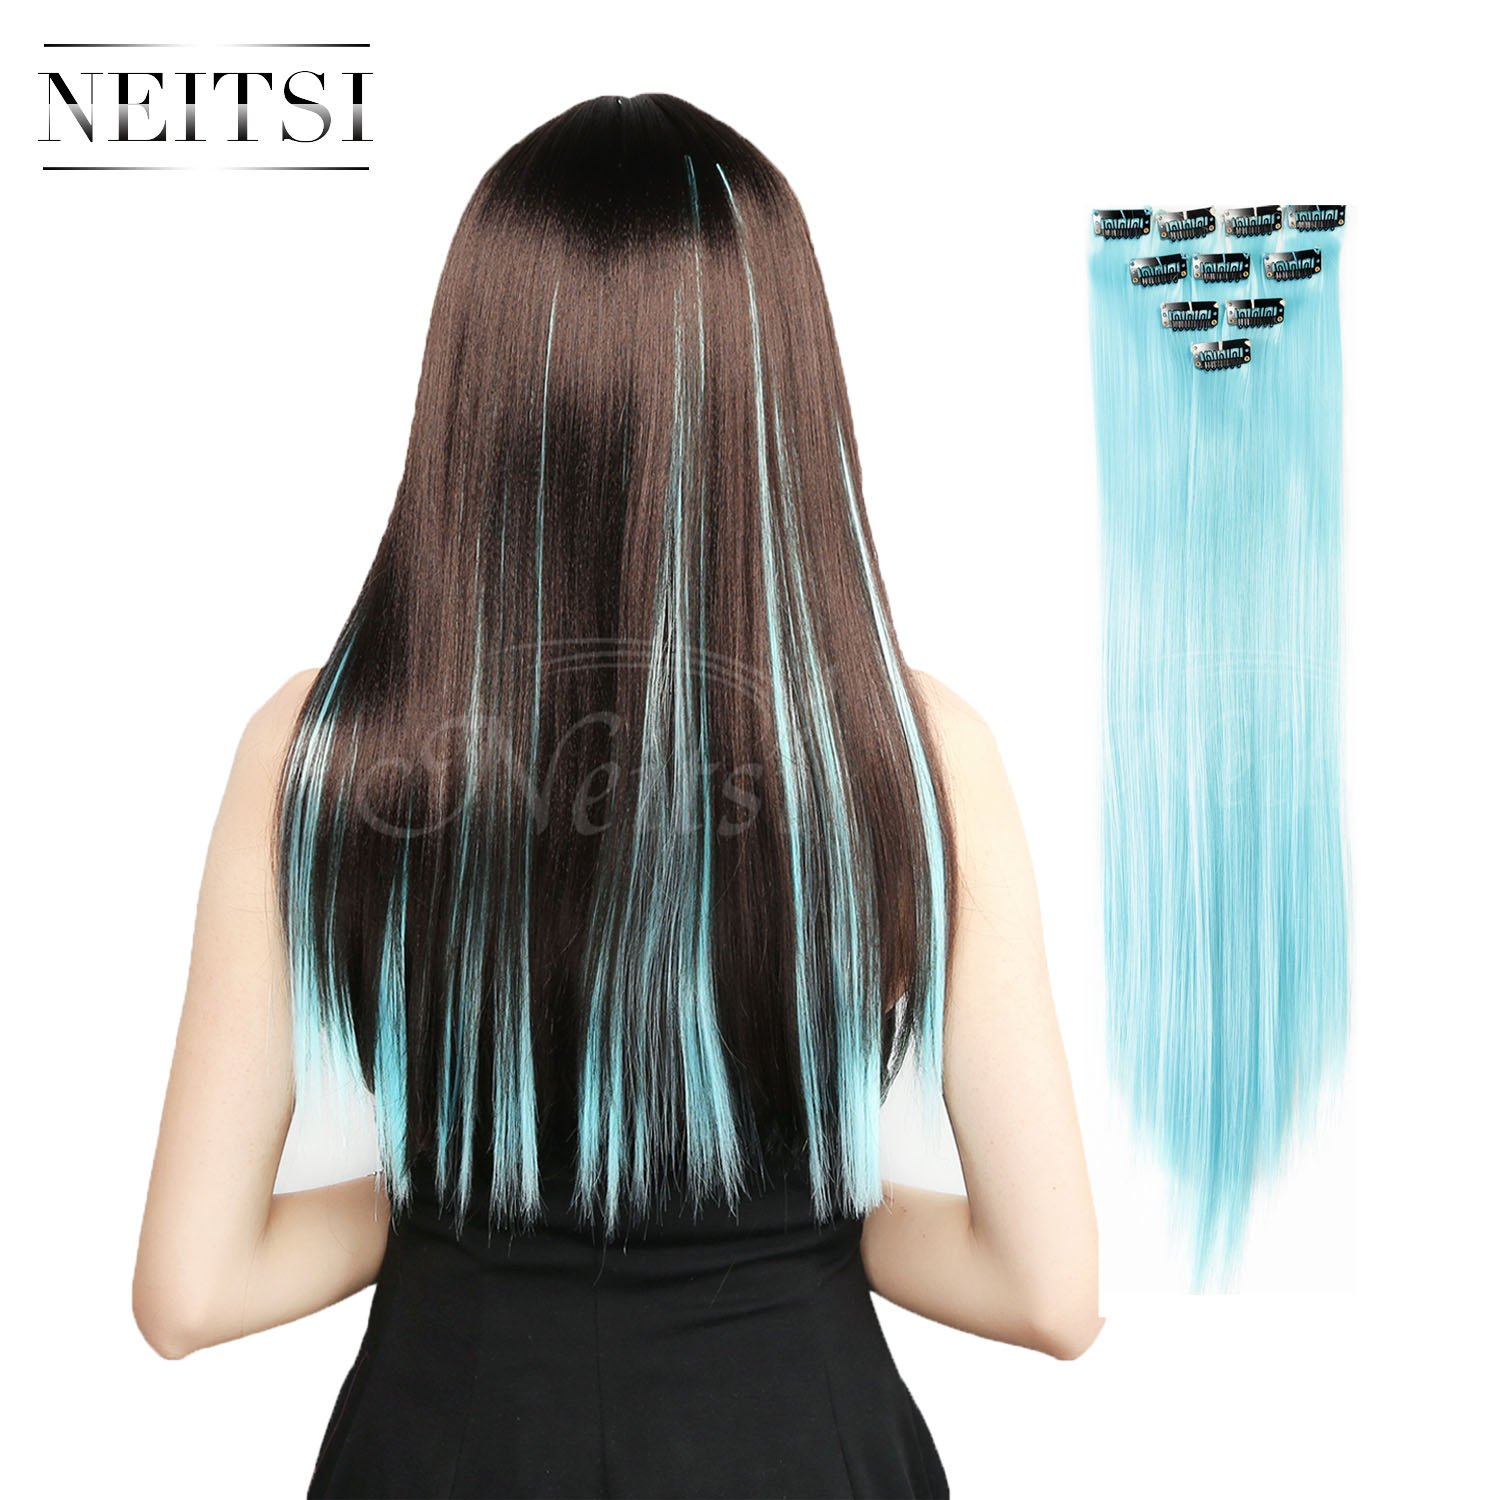 Neitsi 10pcs 18inch Colored Highlight Synthetic Clip on in Hair Extensions #F14 Blue LTD